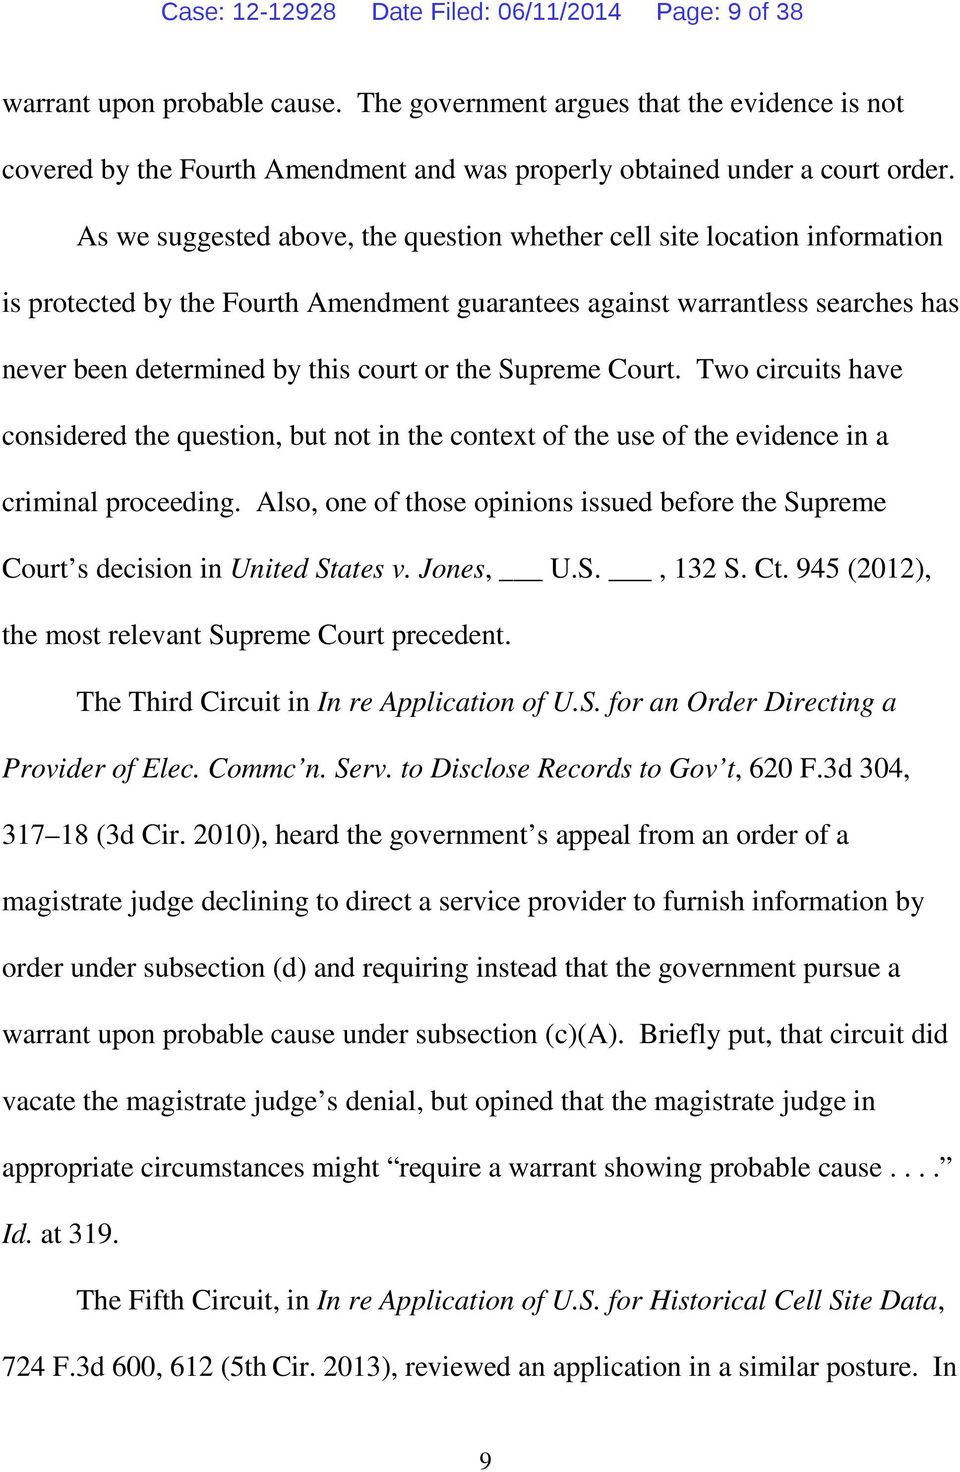 As we suggested above, the question whether cell site location information is protected by the Fourth Amendment guarantees against warrantless searches has never been determined by this court or the